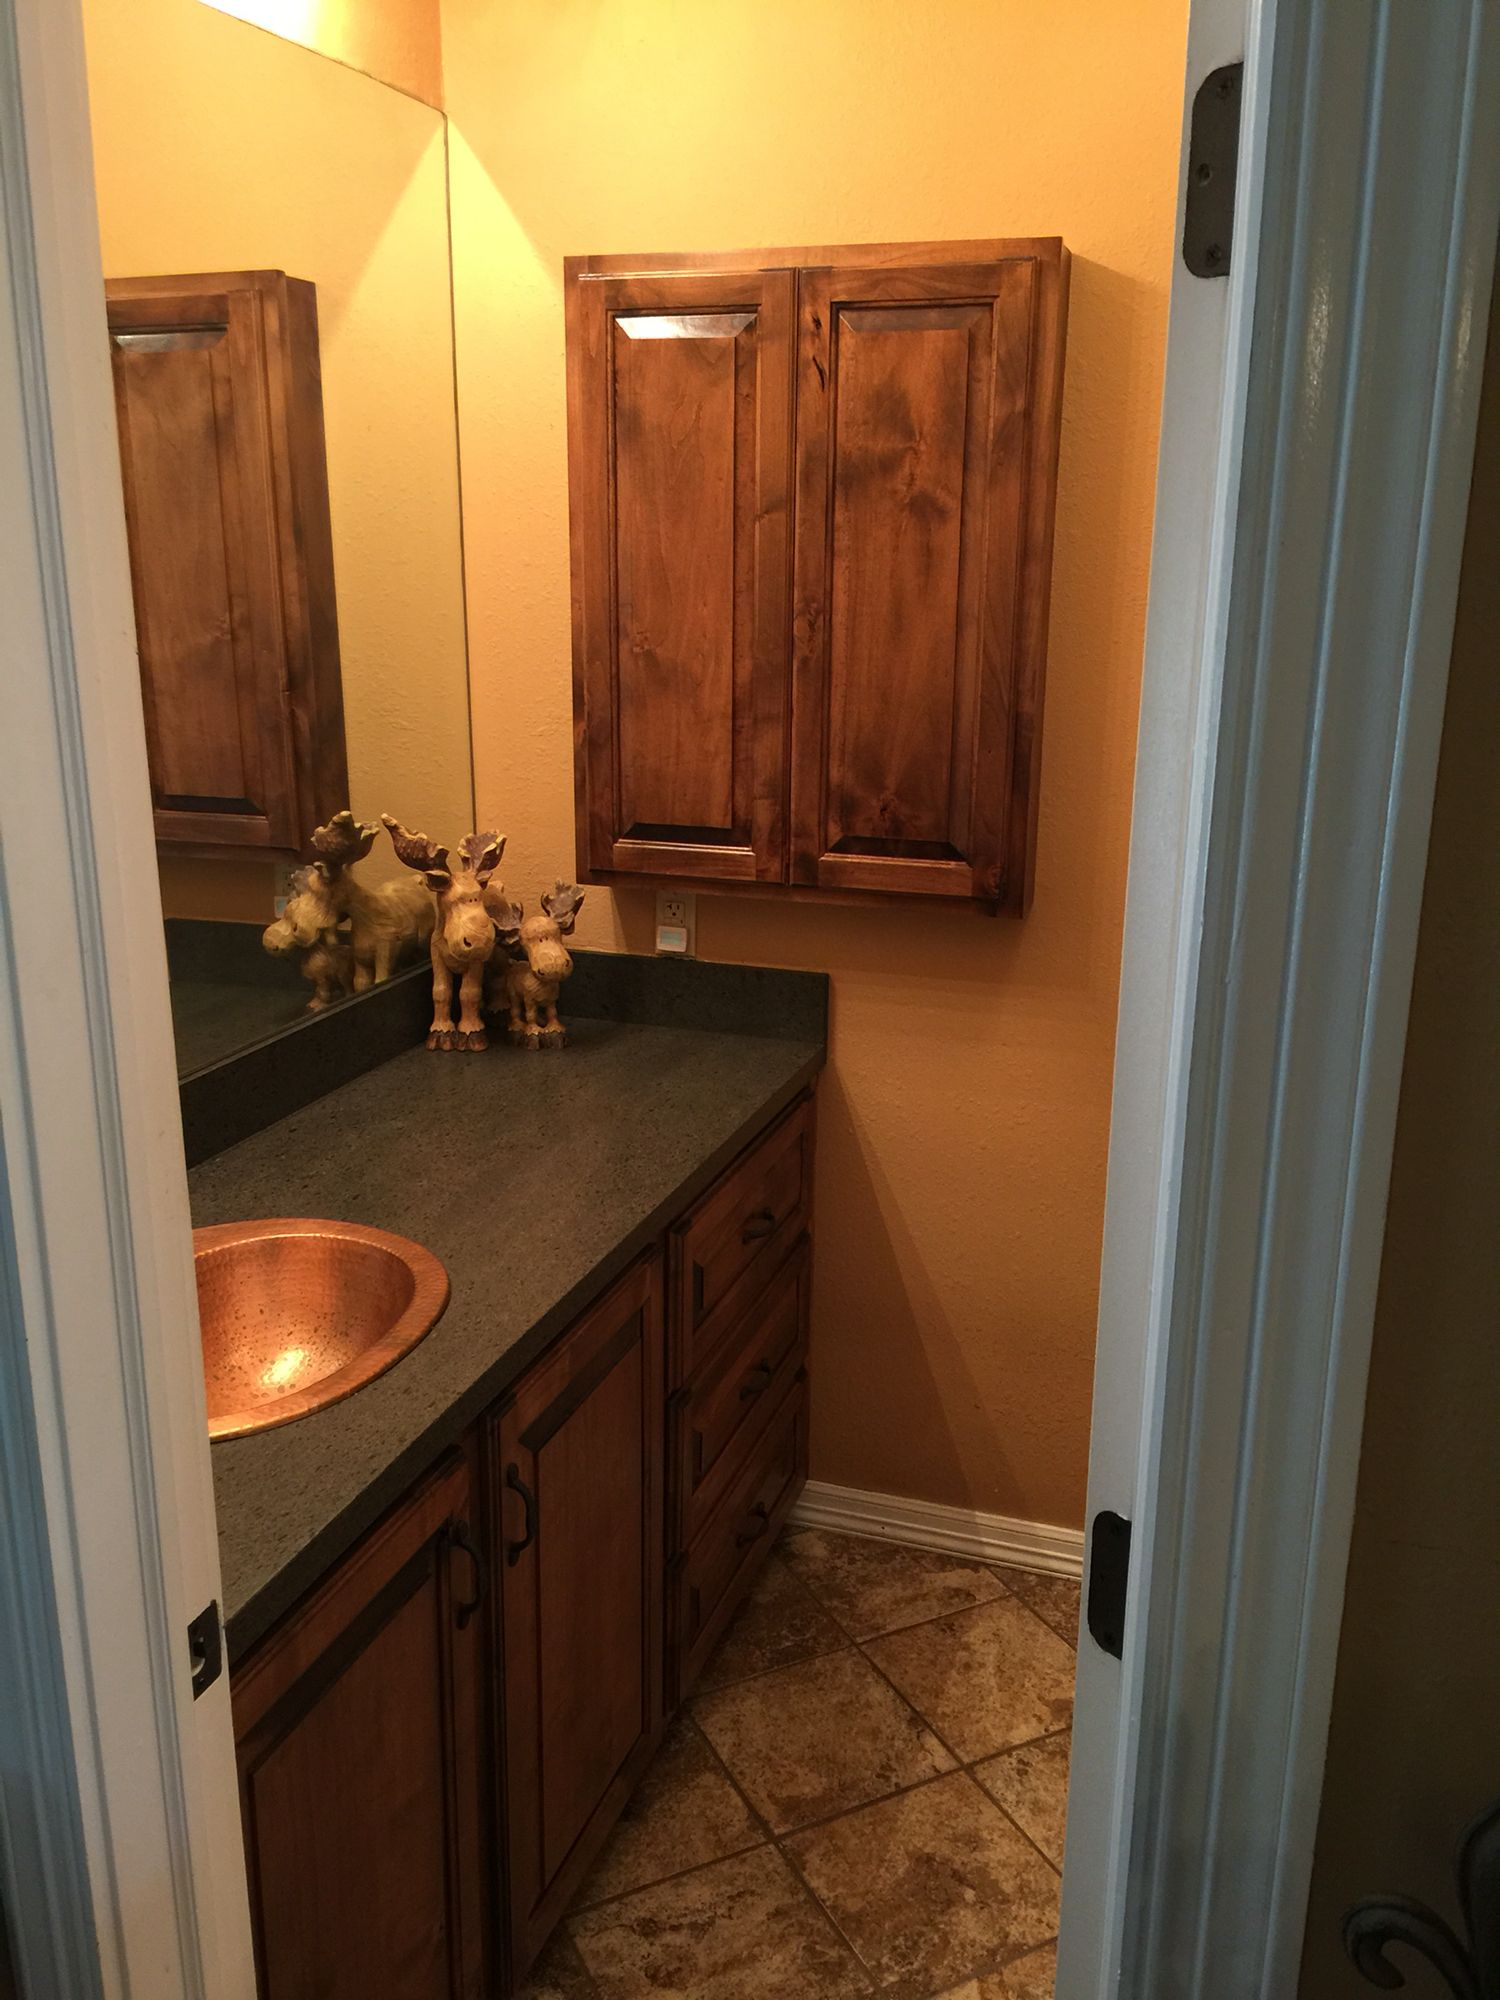 Custom bathroom vanity and matching medicine cabinet Wood Knotty